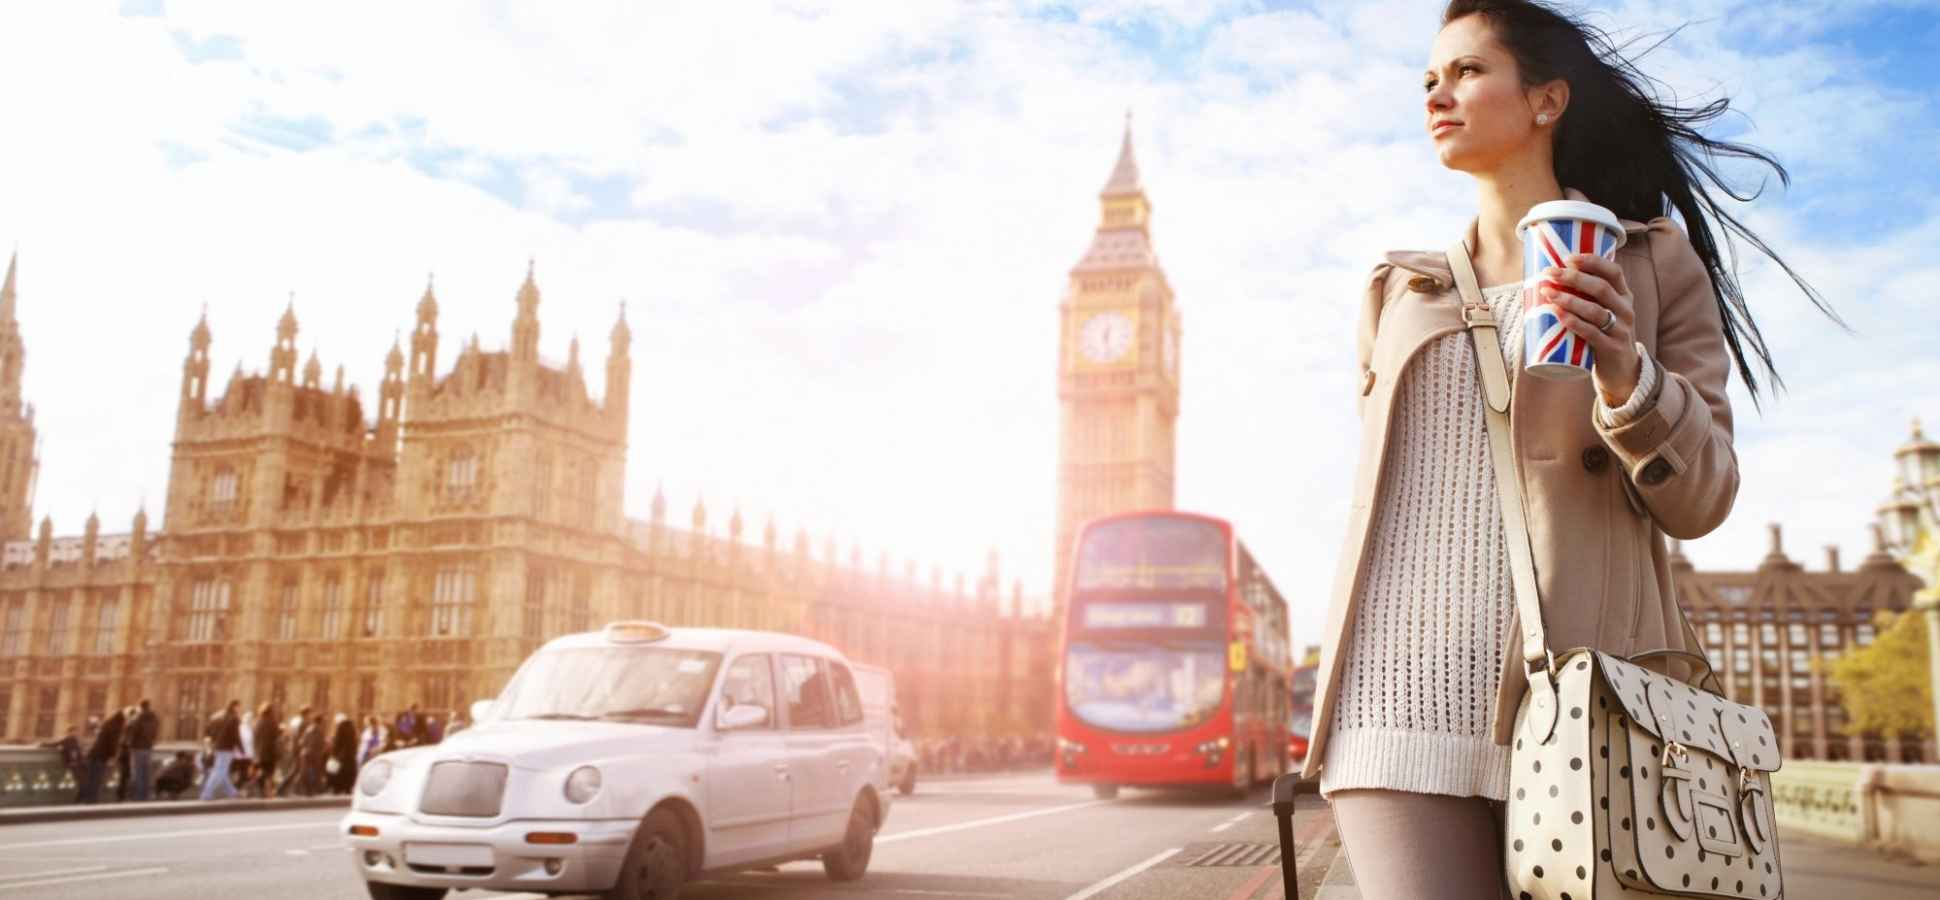 9 Ways to Make the Best of Traveling Alone